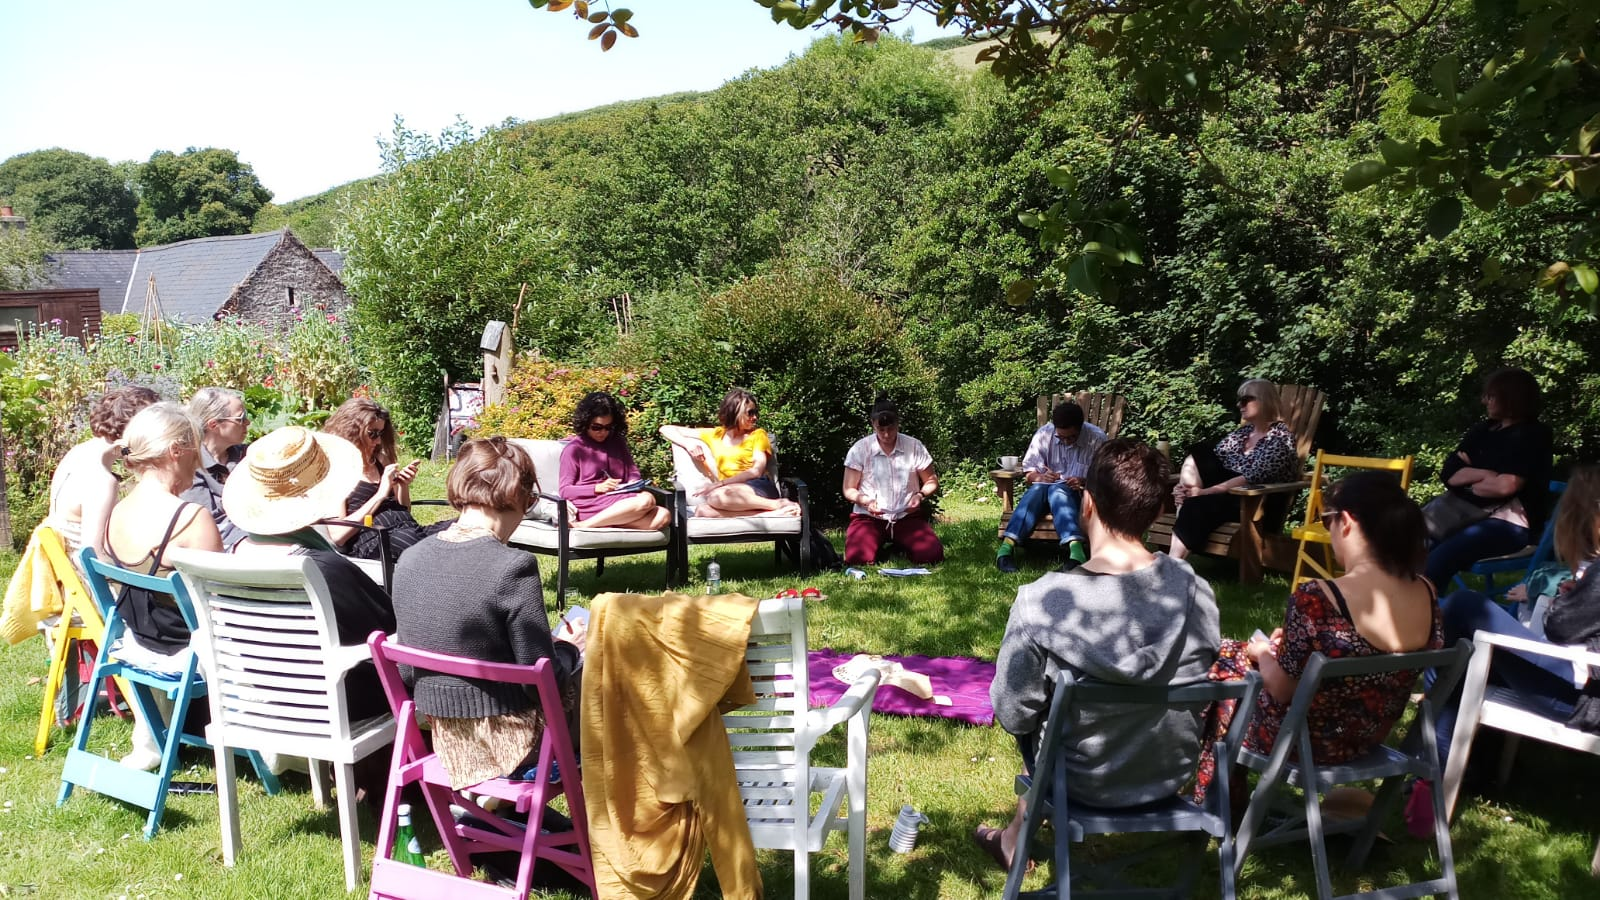 A varied group of people are sat on chairs in a circle, in an outdoor, lush and leafy space, perhaps a park or a garden. Dappled sunlight falls upon them through the surrounding trees. There are about 15 of them, some writing in notebooks whilst the others appear to be talking.